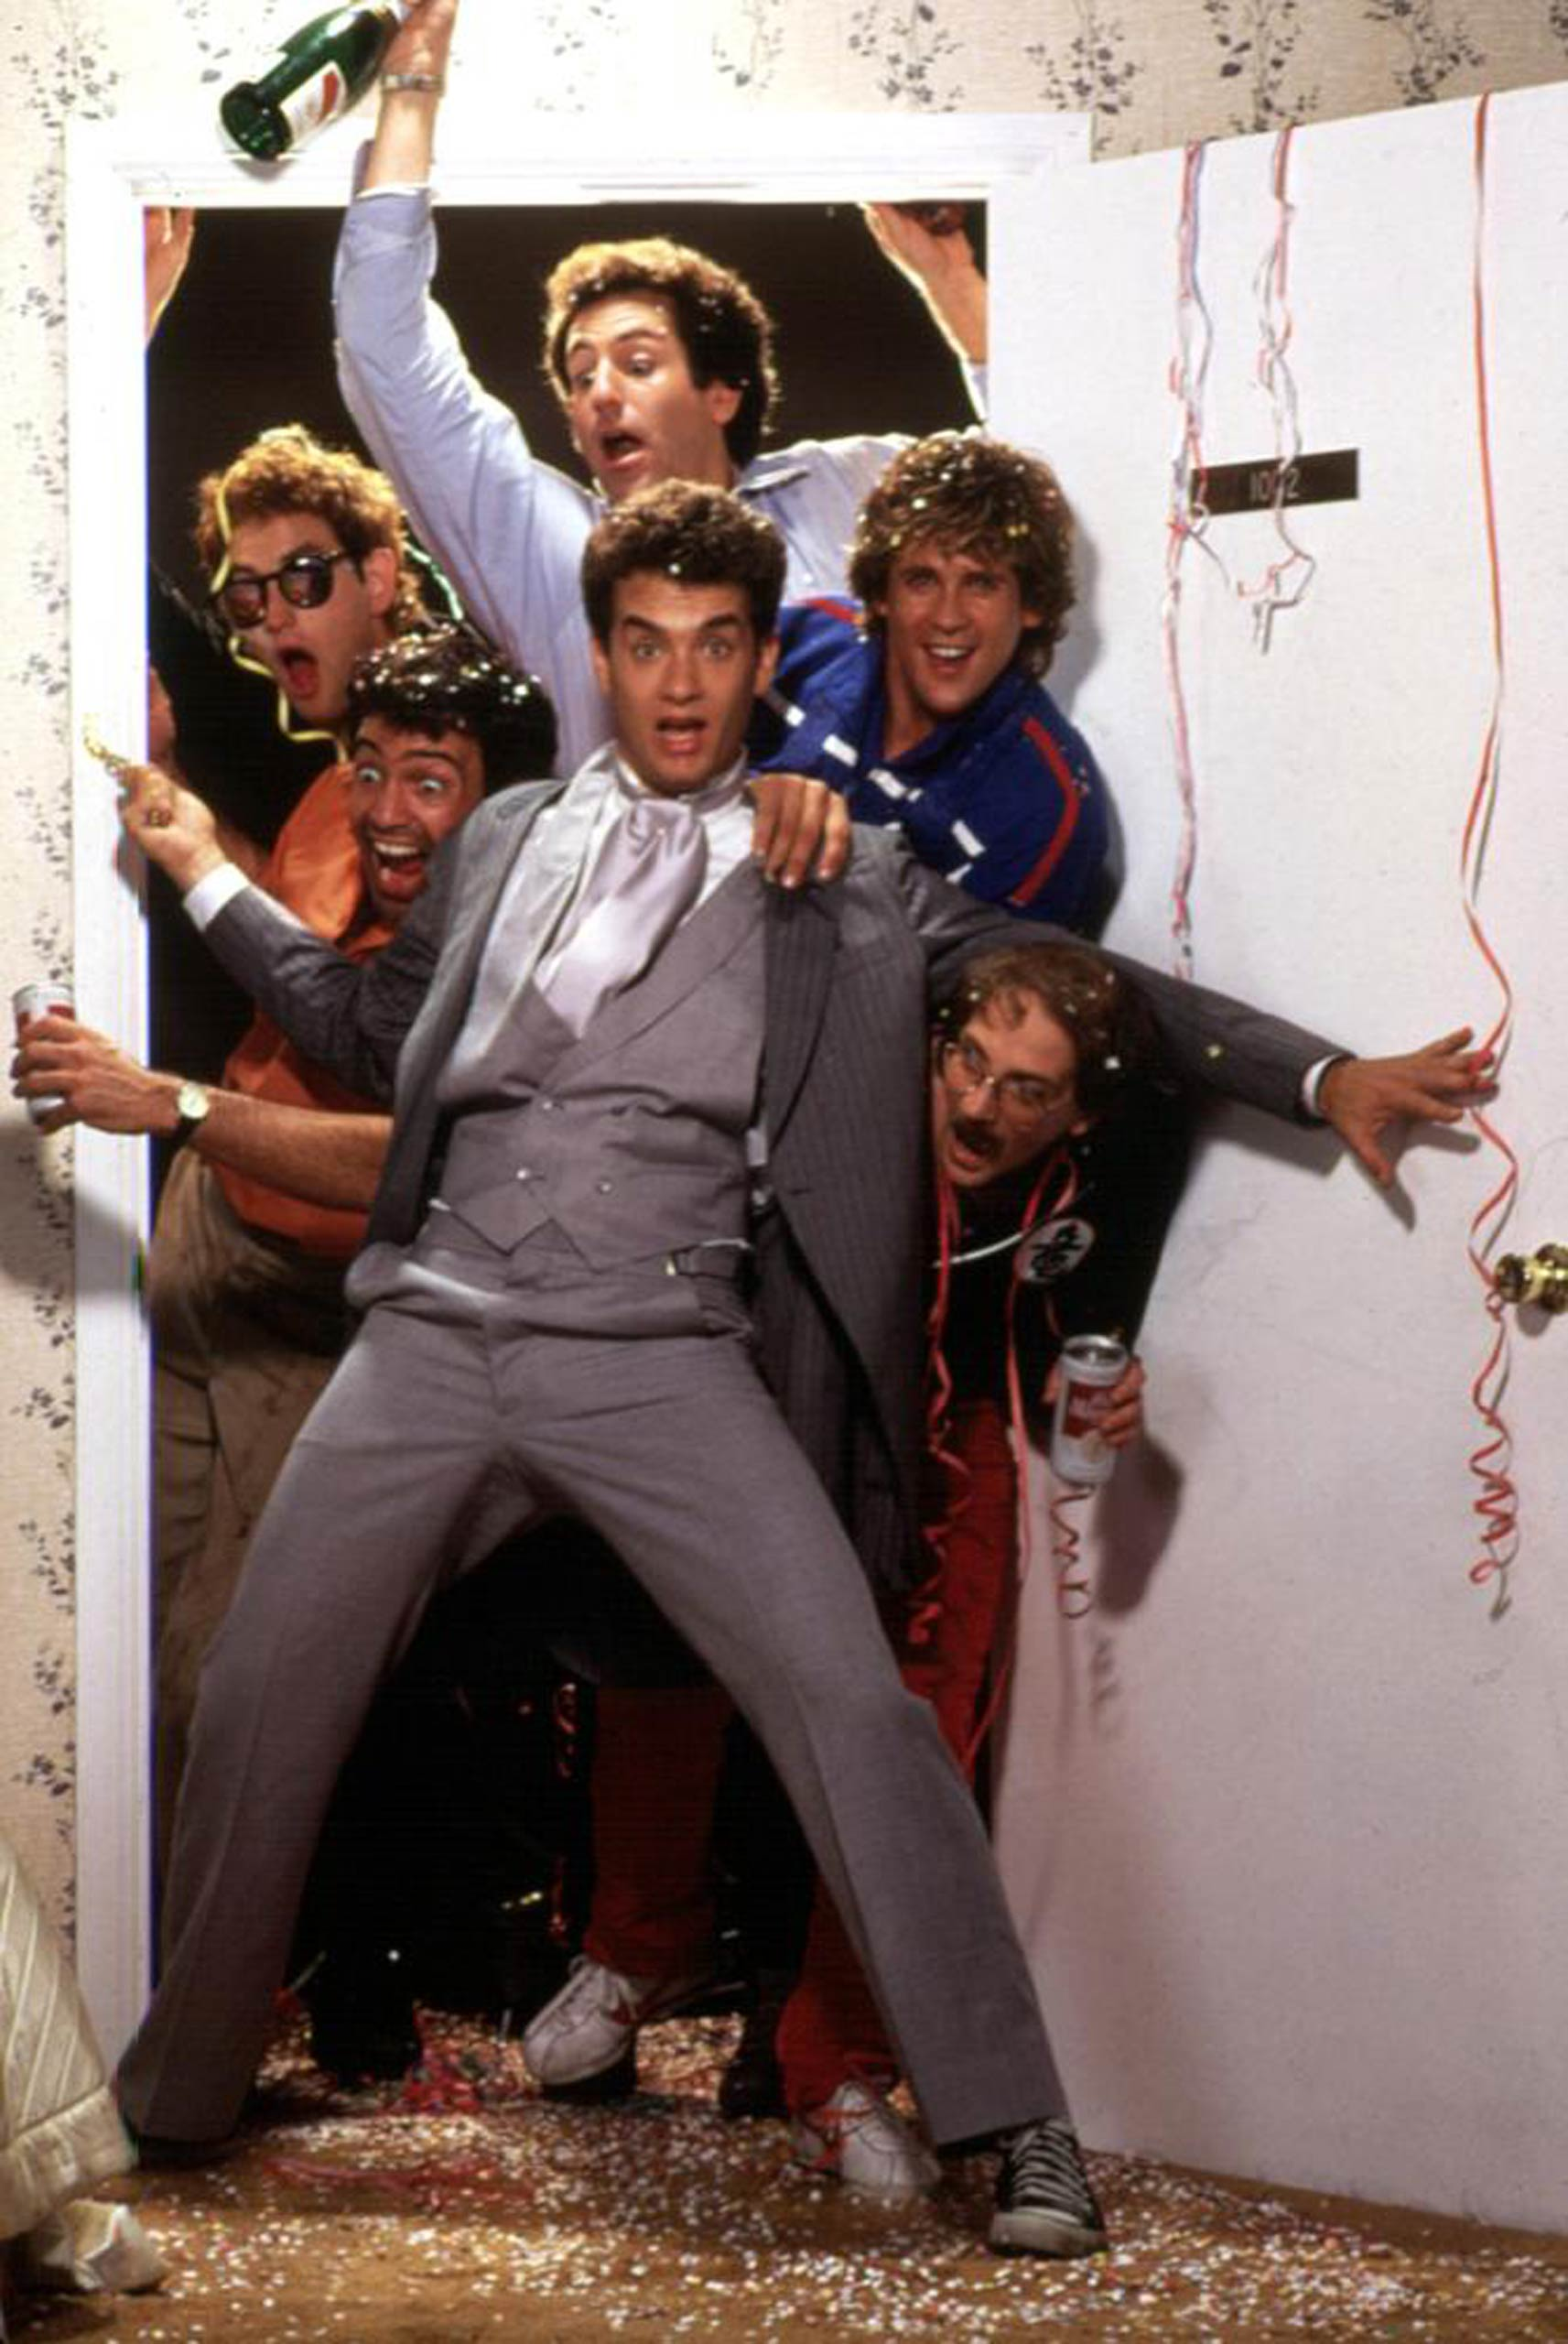 "<strong><i>Bachelor Party</i> (ABC)</strong>                                                                      The writers have said the TV show, ""loosely based"" on the 1984 Tom Hanks movie about bachelor party debauchery, will be an anthology series in which each season focuses on a different wedding party and examines the relationships of various couples."